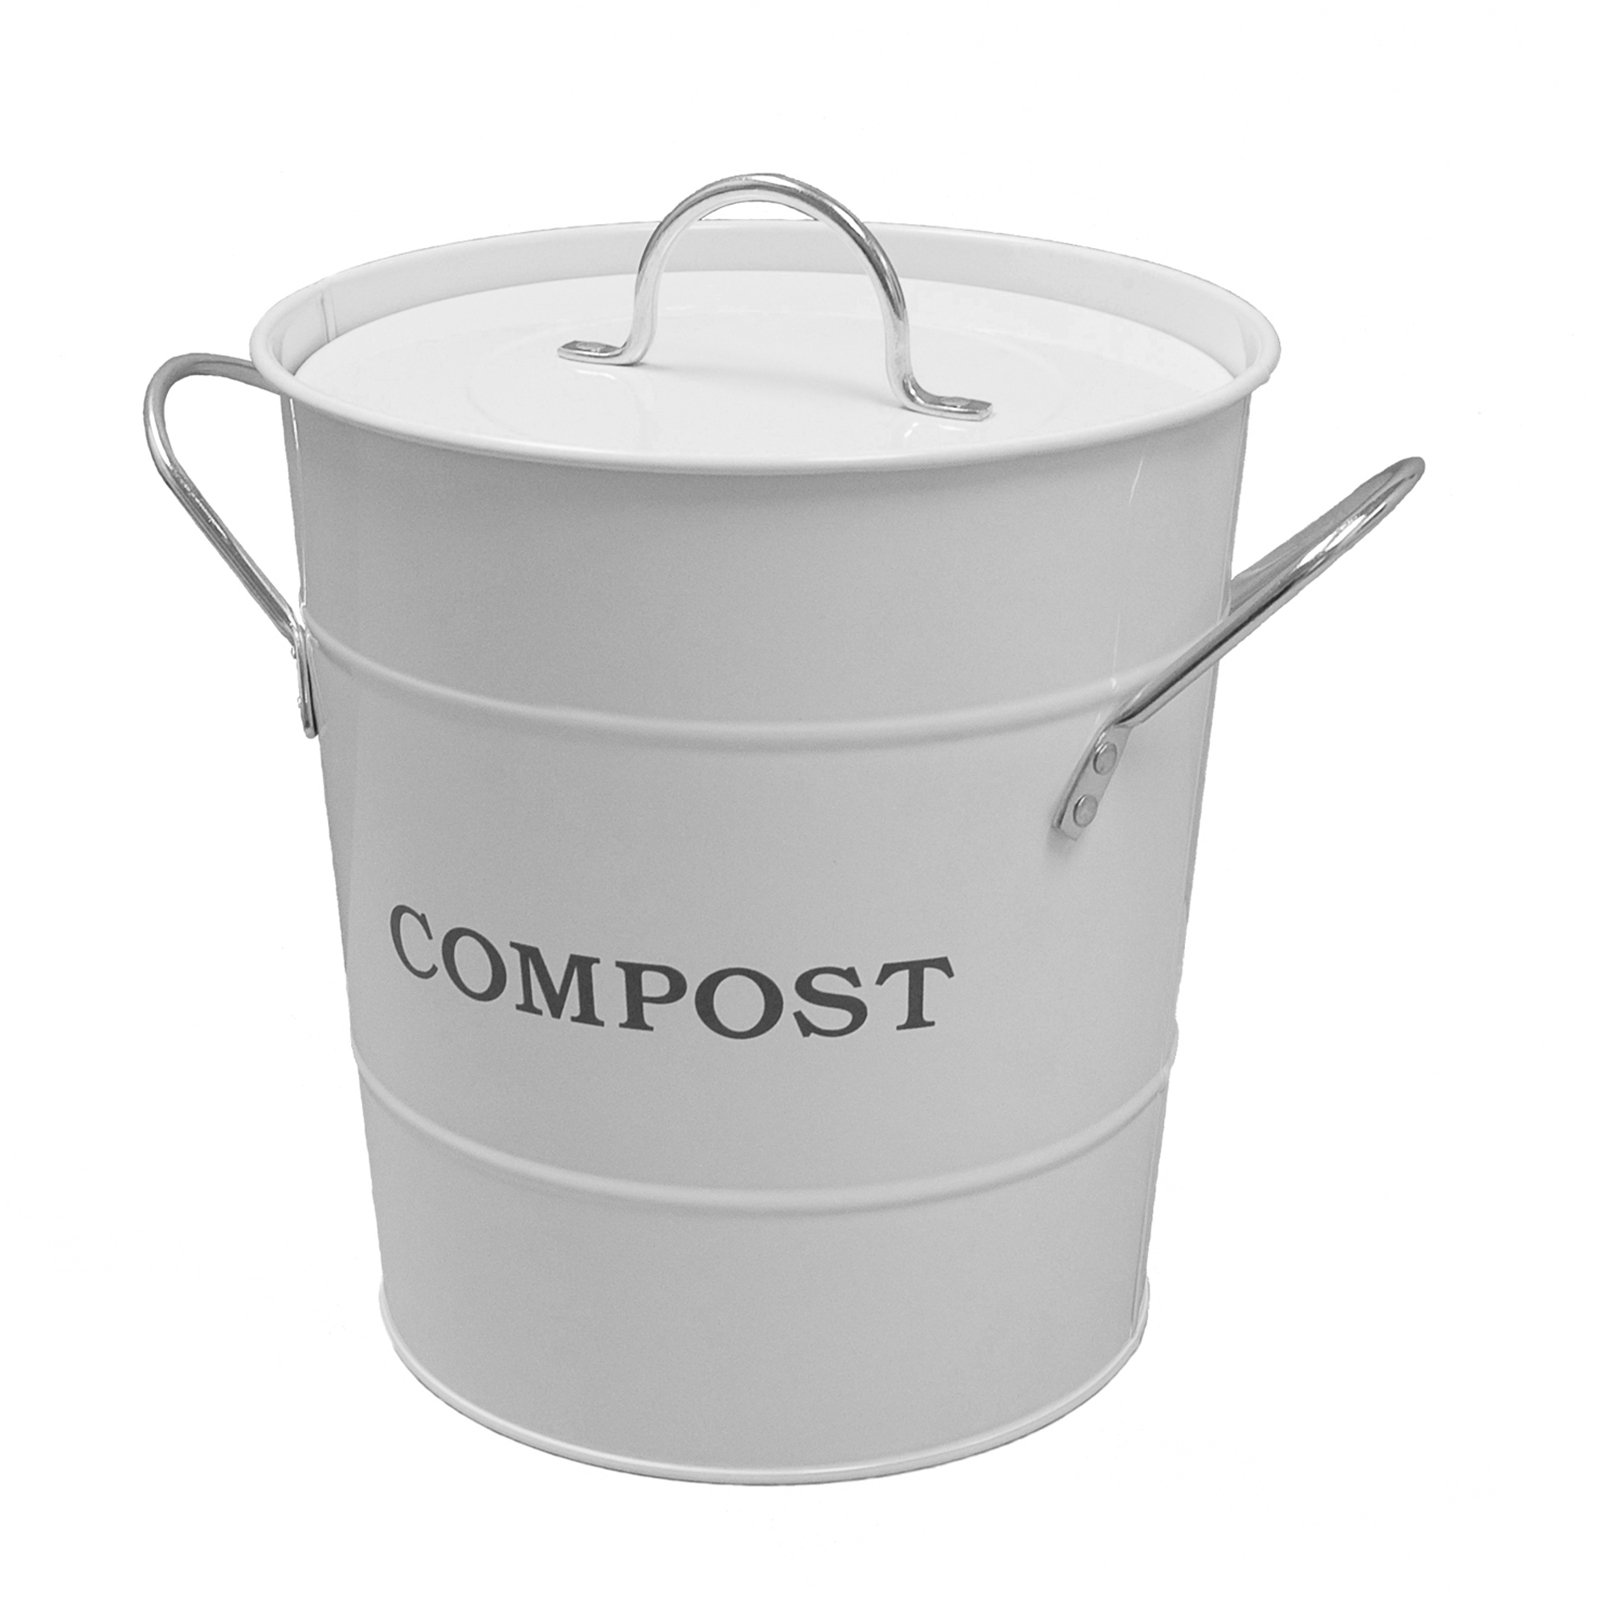 Exaco 2 in 1 Compost Bucket by Exaco Trading Co